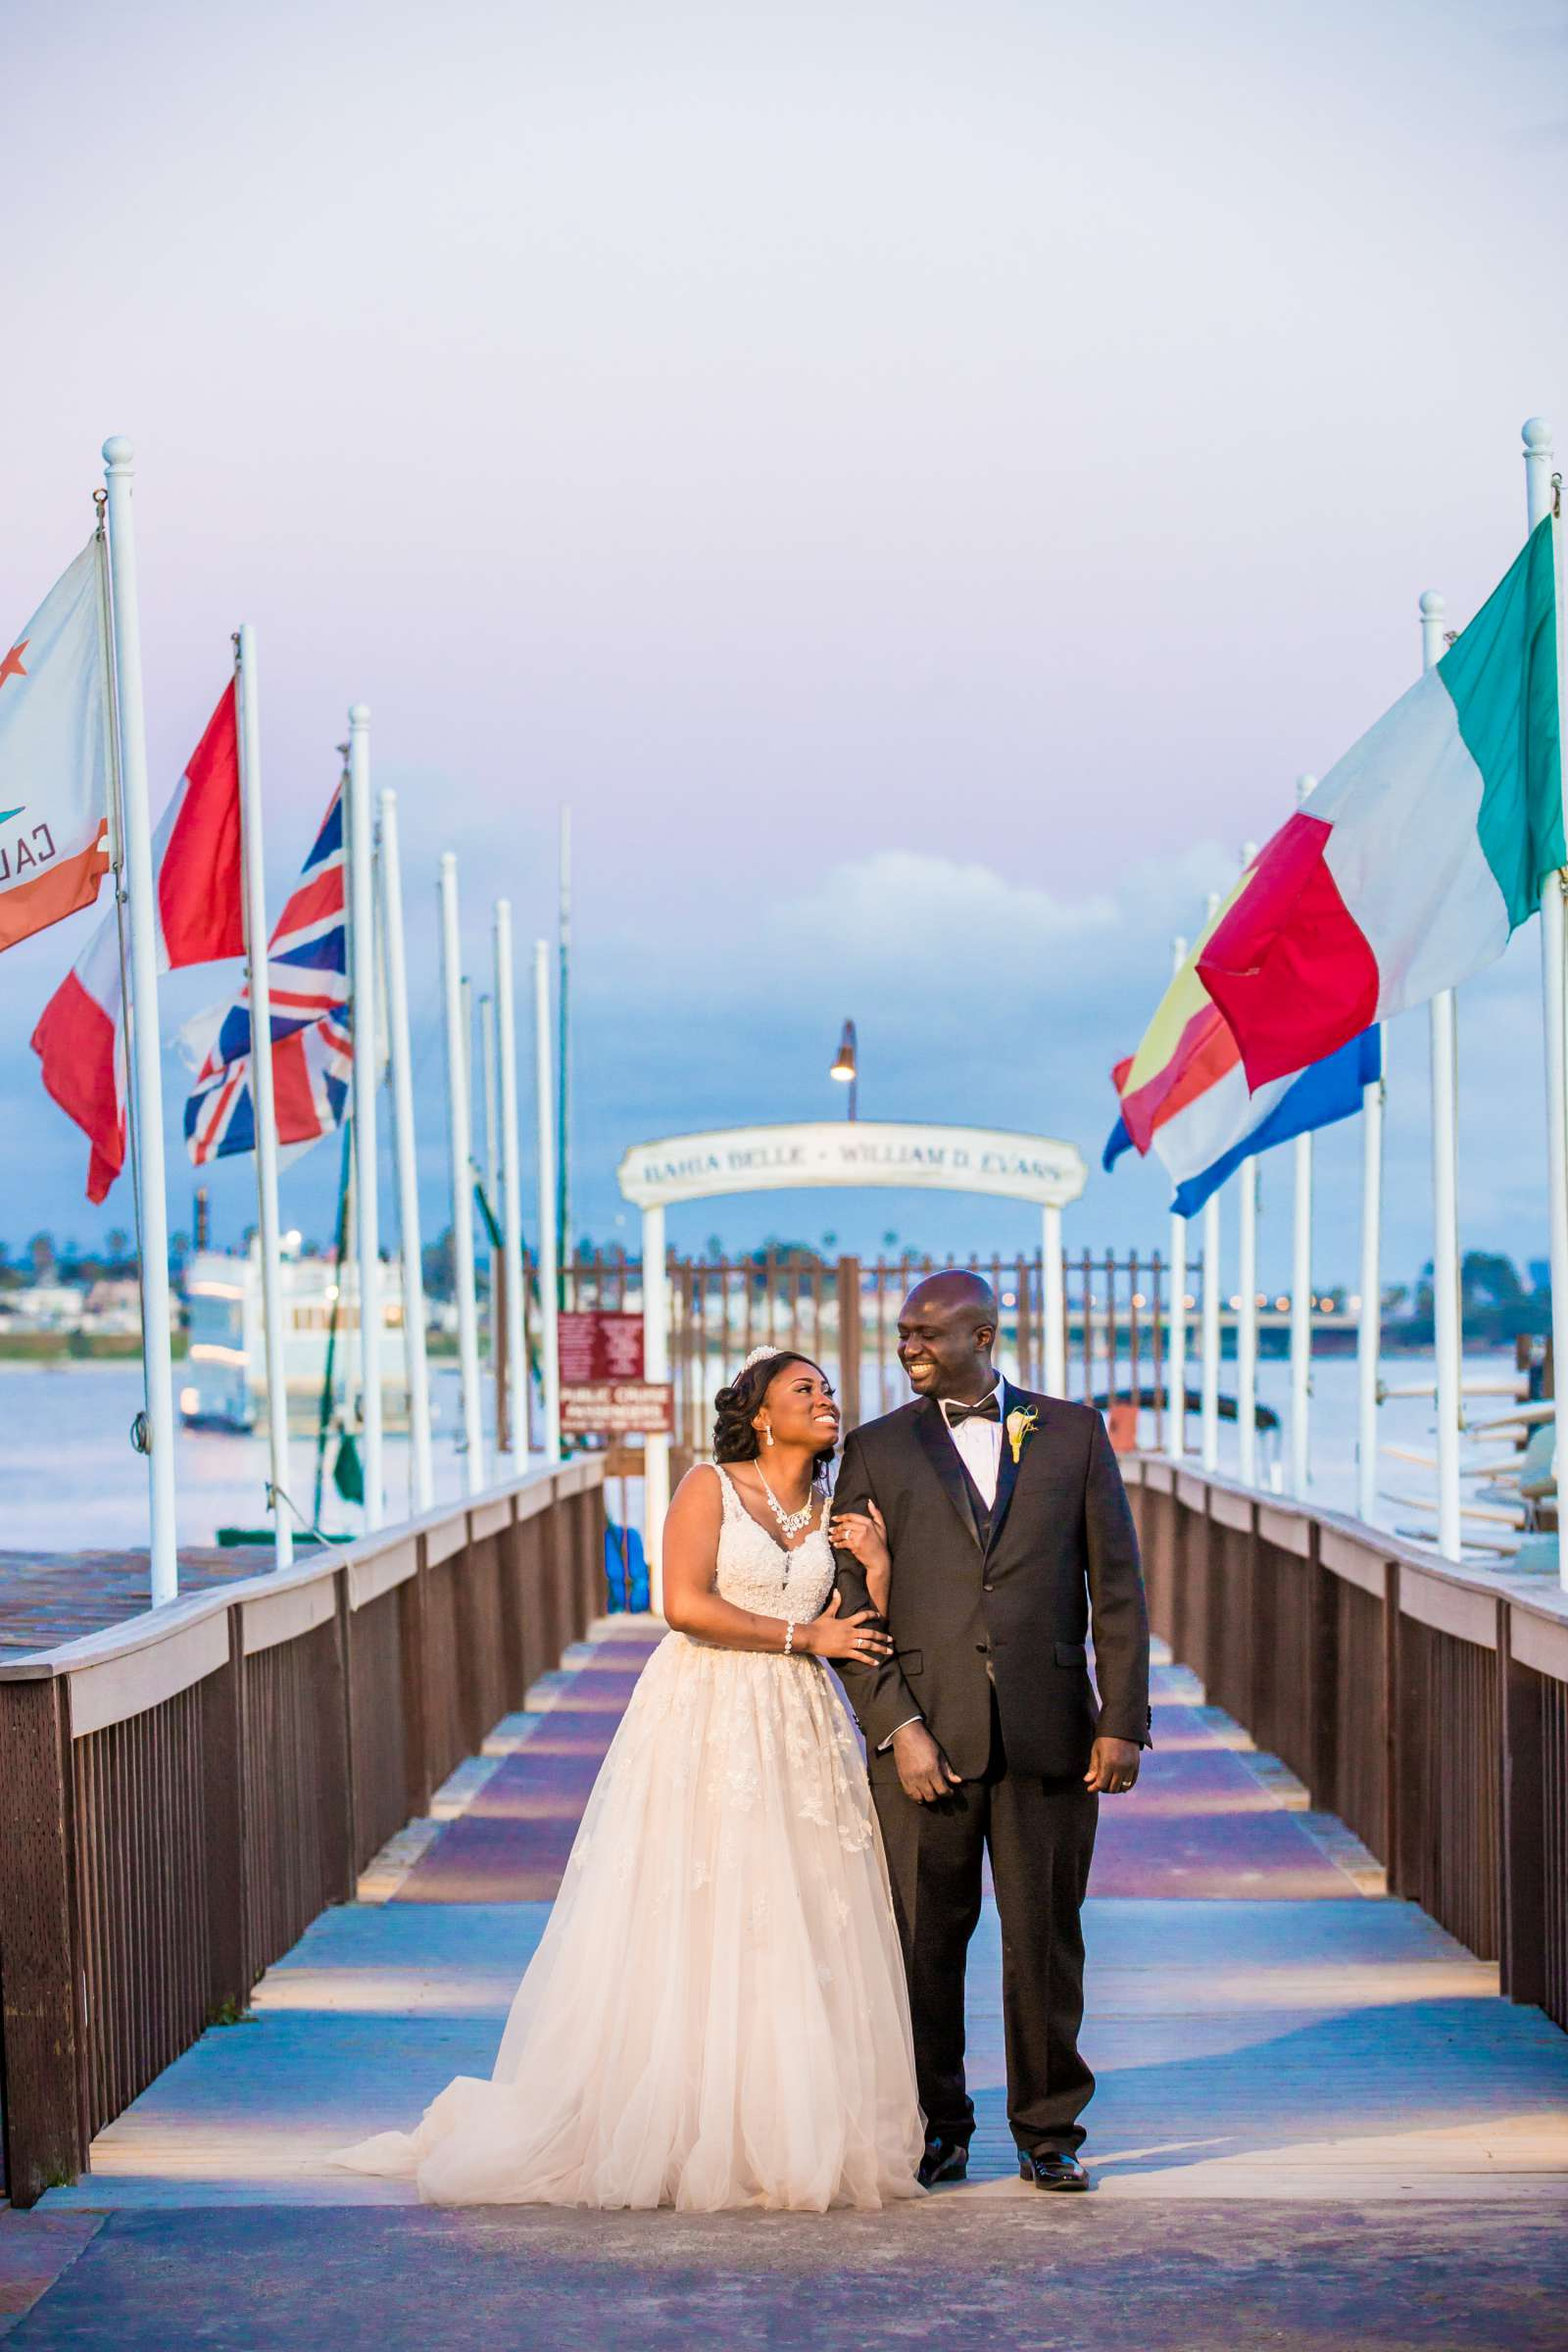 Catamaran Resort Wedding coordinated by Events Inspired SD, Vanessa and Akorli Wedding Photo #17 by True Photography